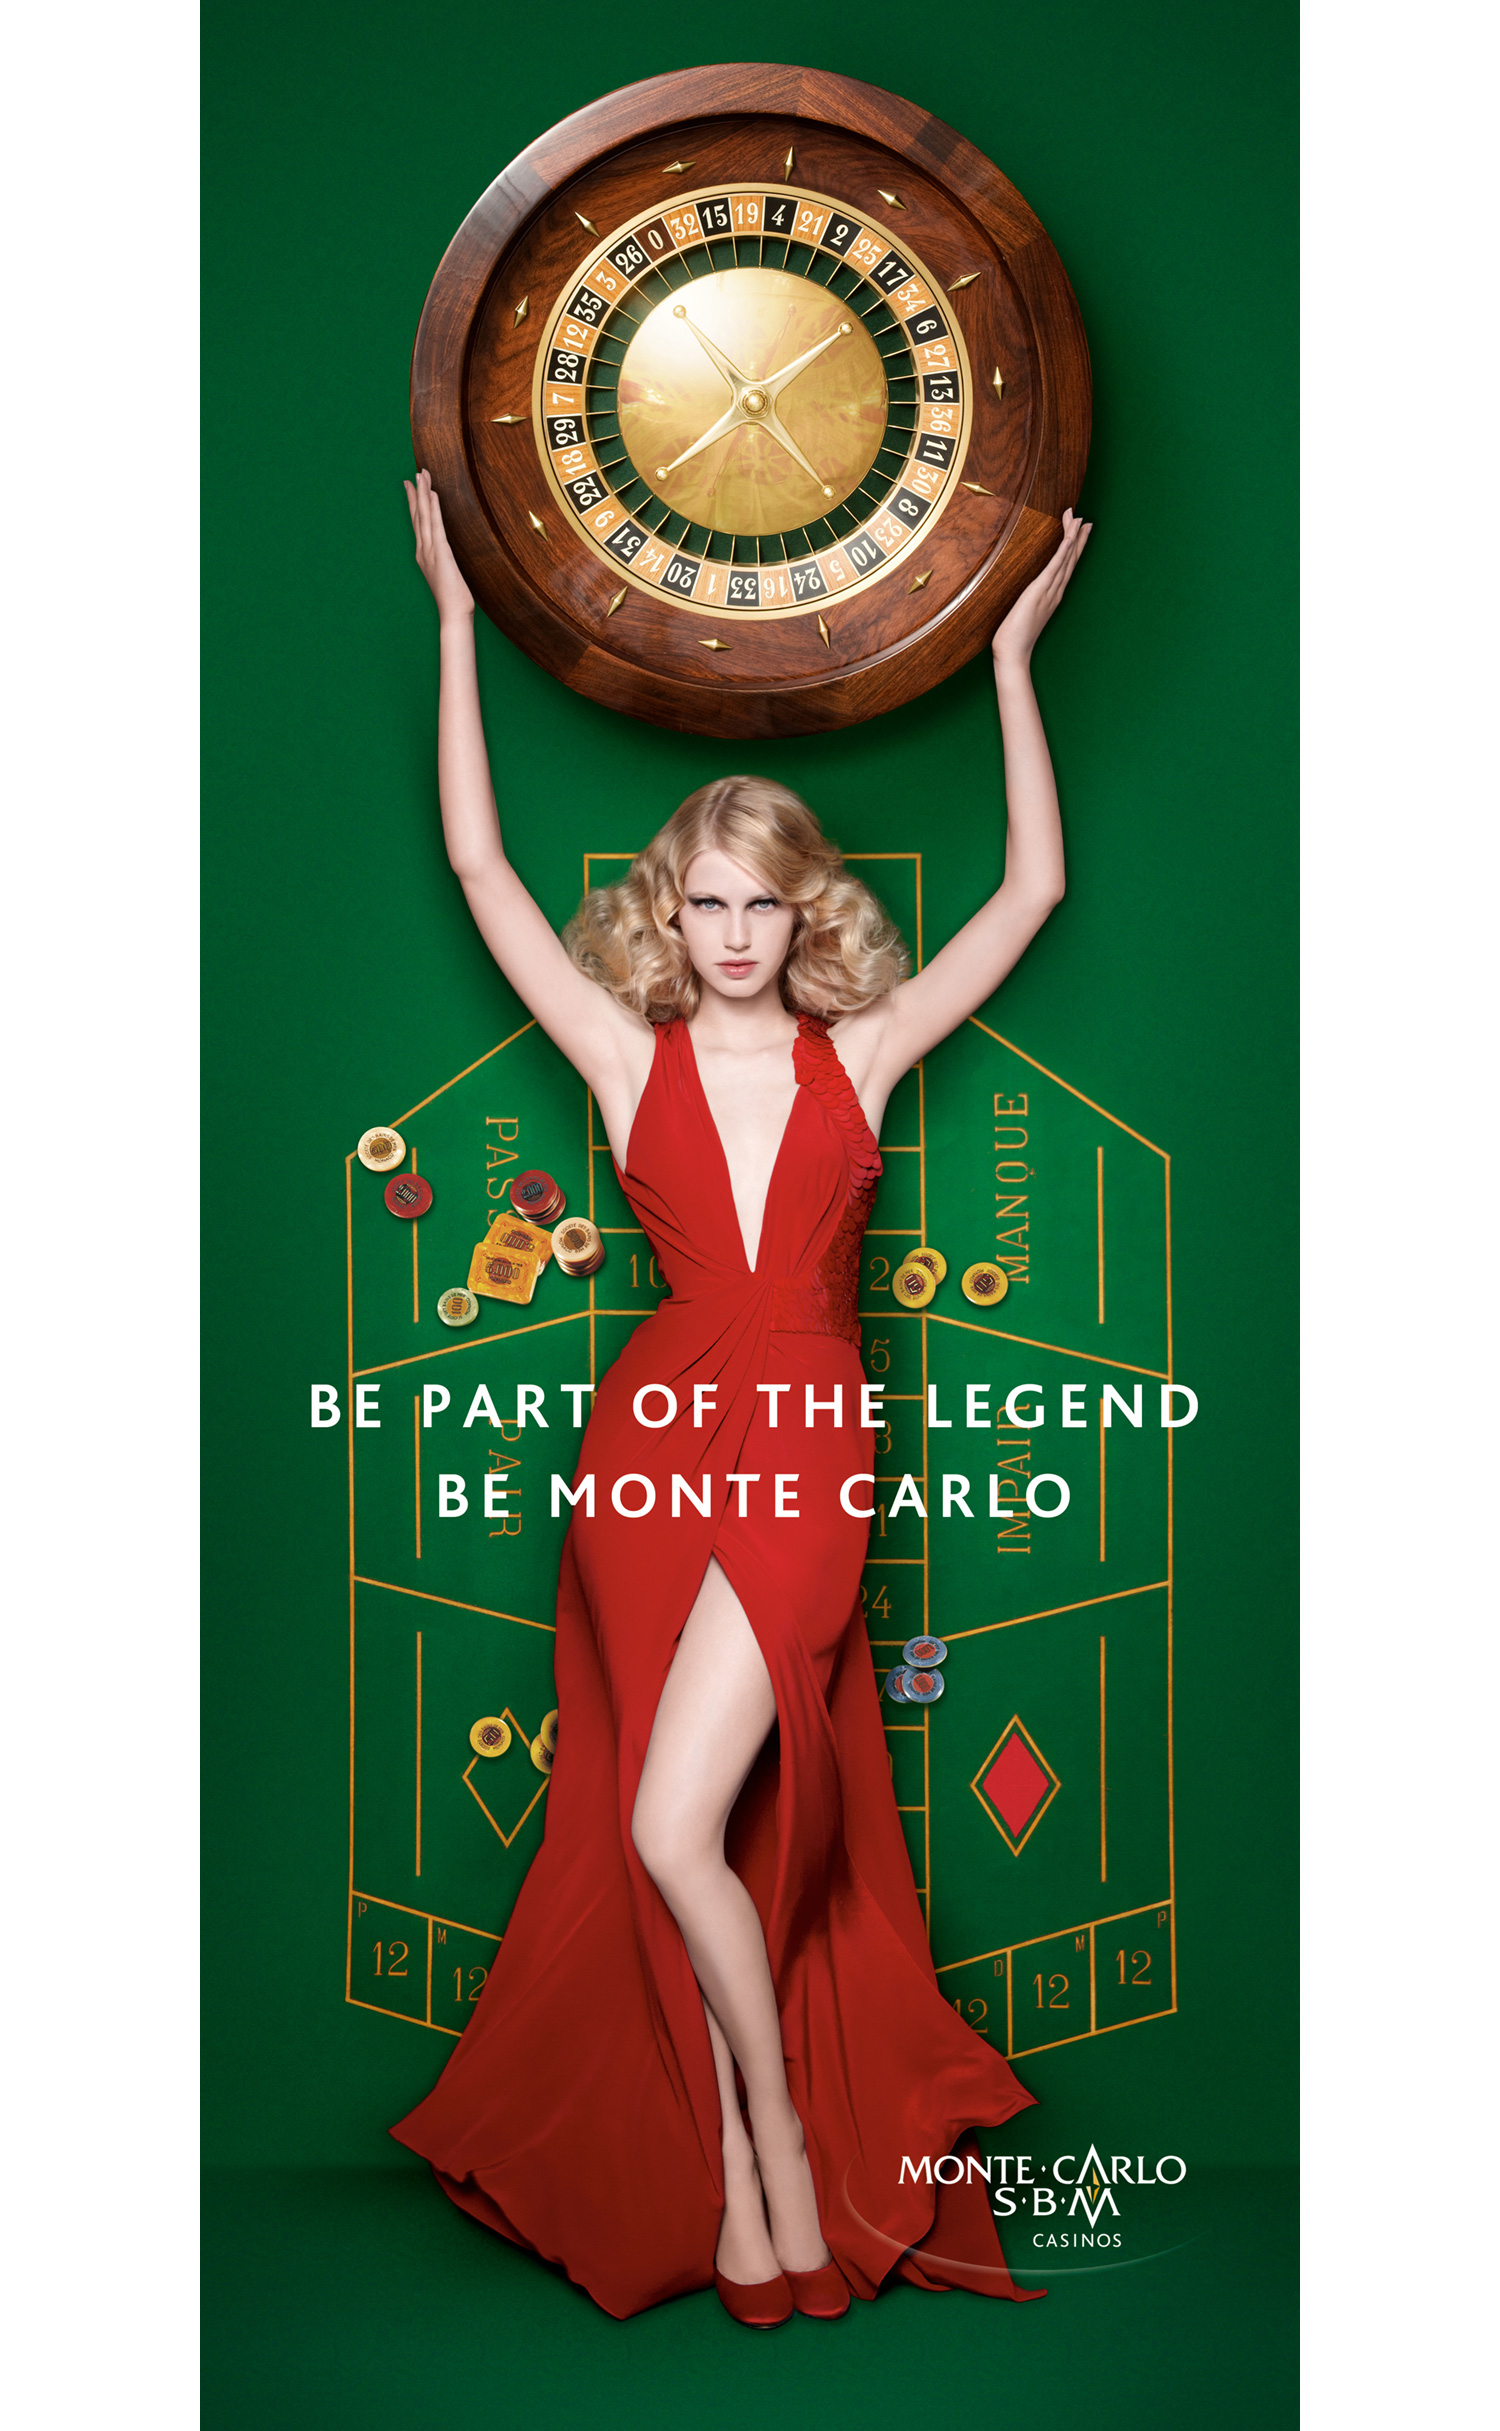 Campagne de communication internationale casinos